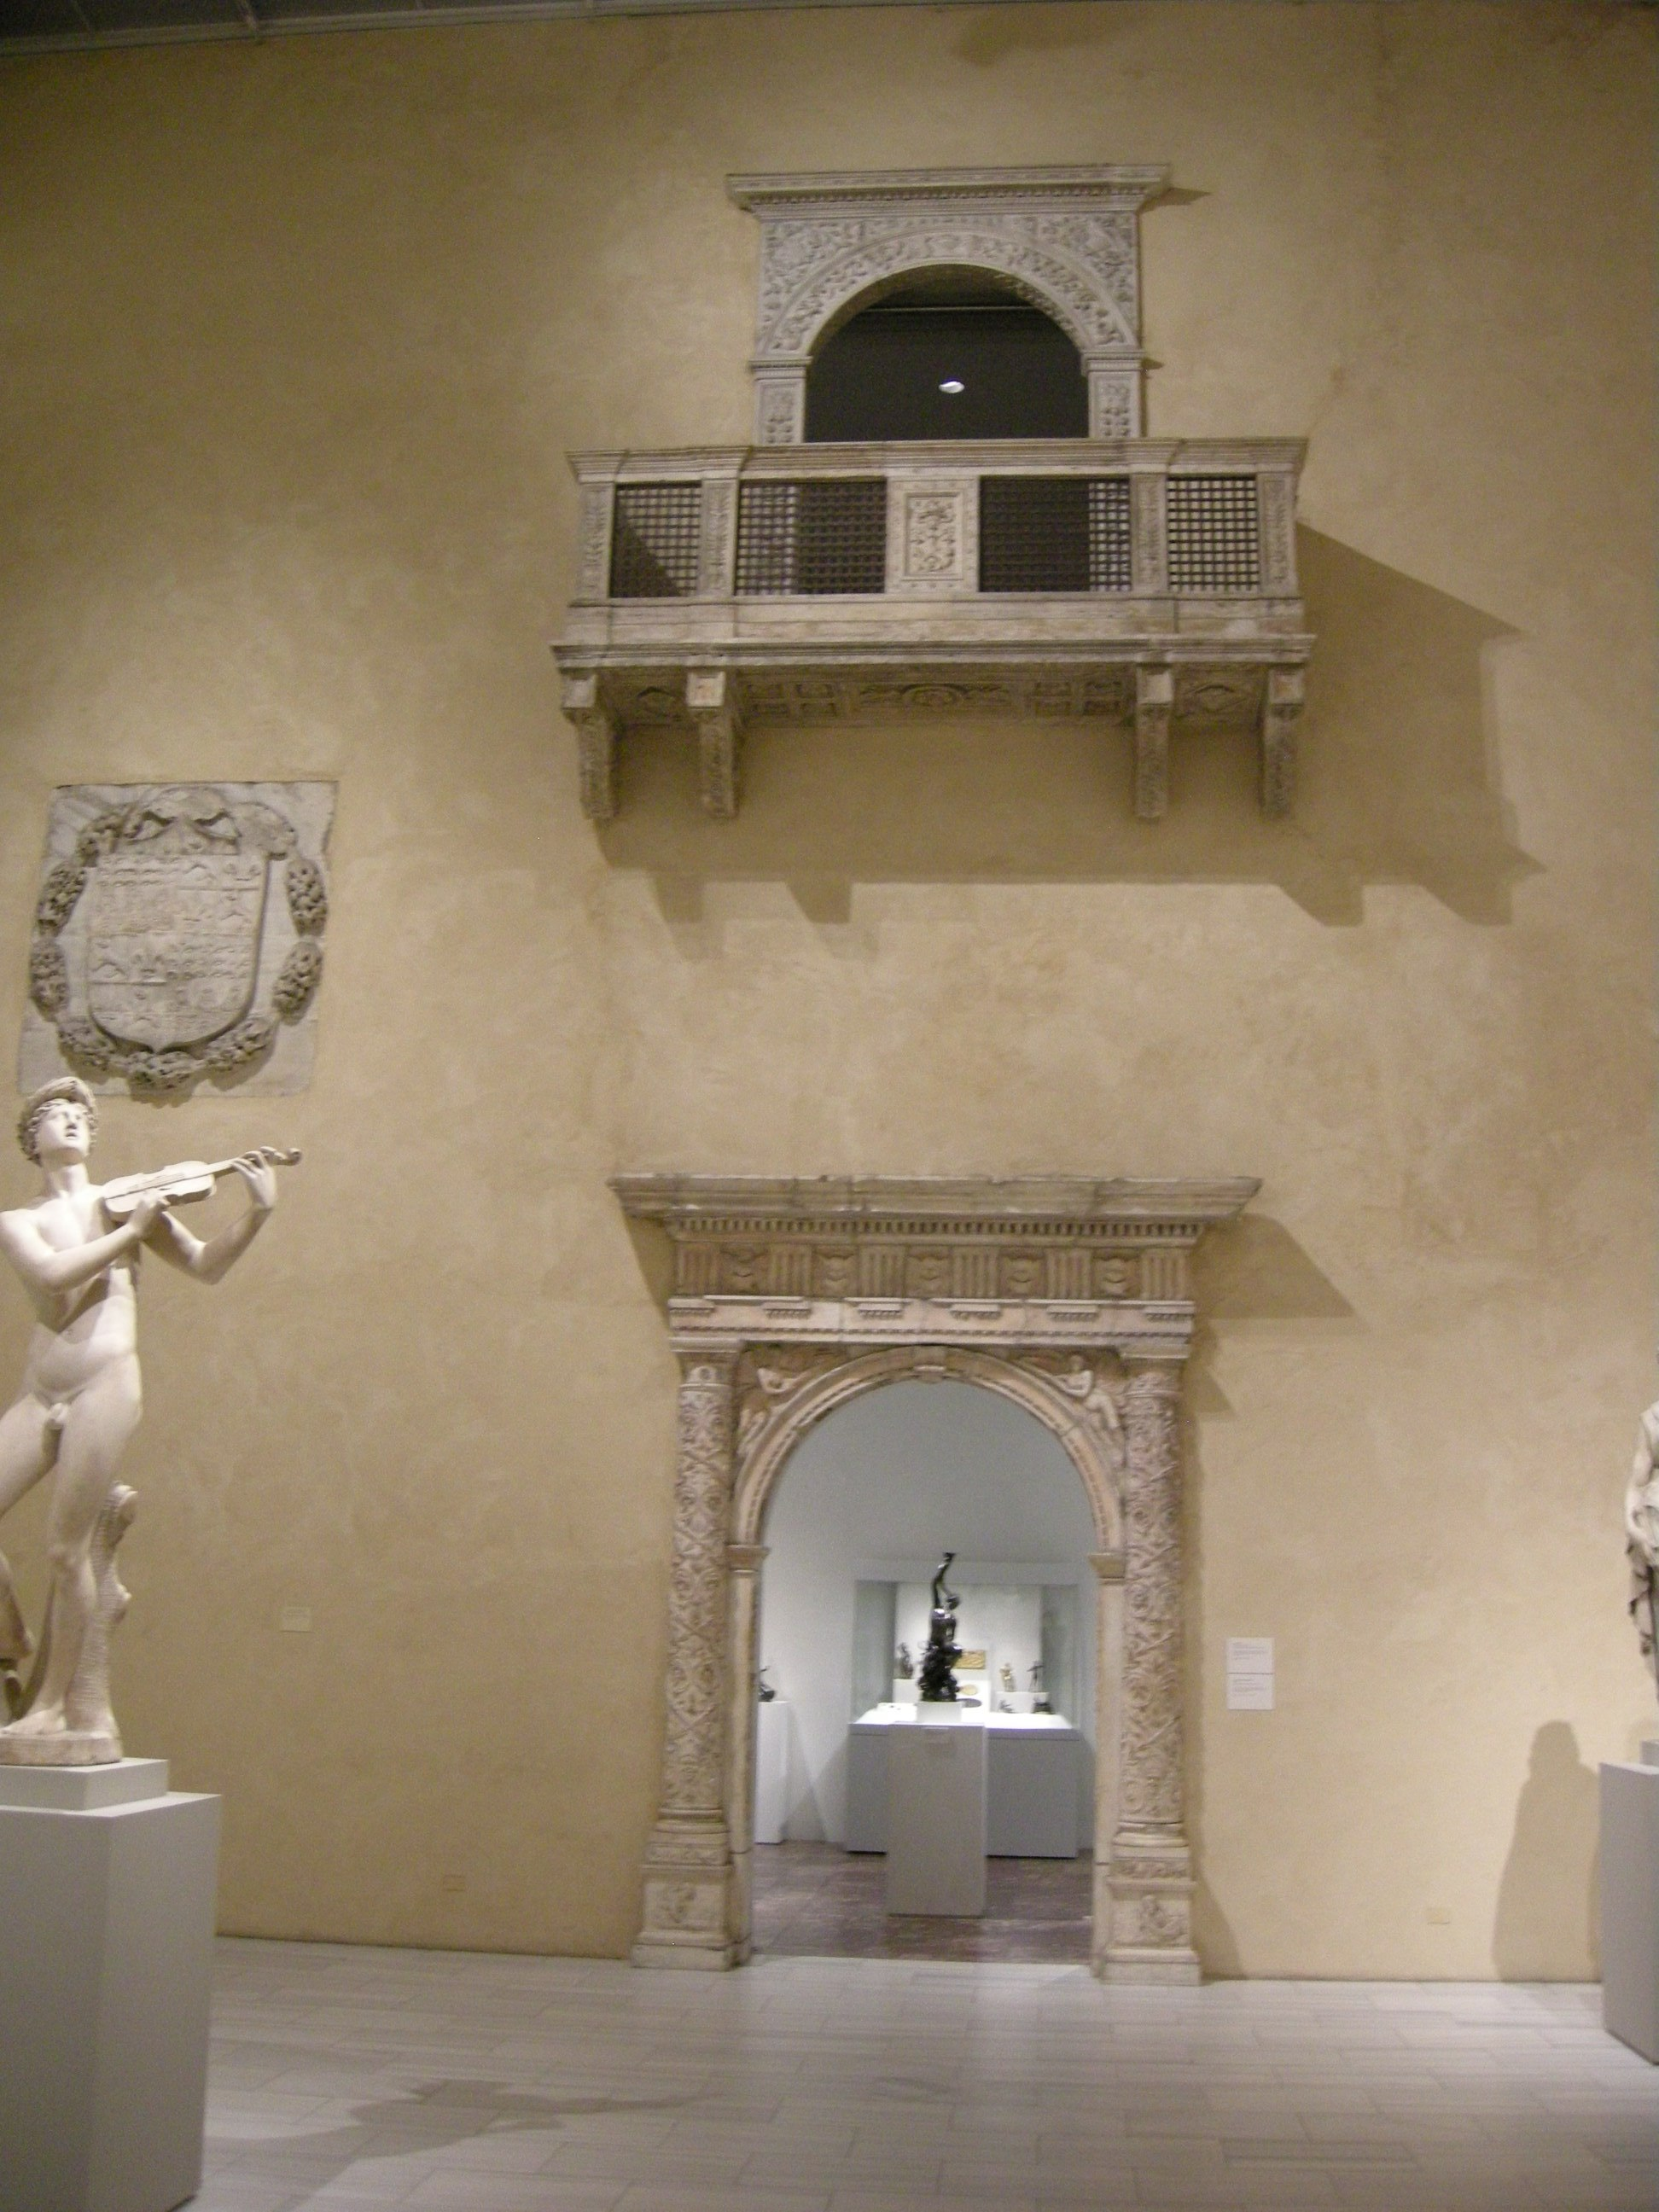 File:Met, patio from the castle of vélez blanco, 04.JPG ...